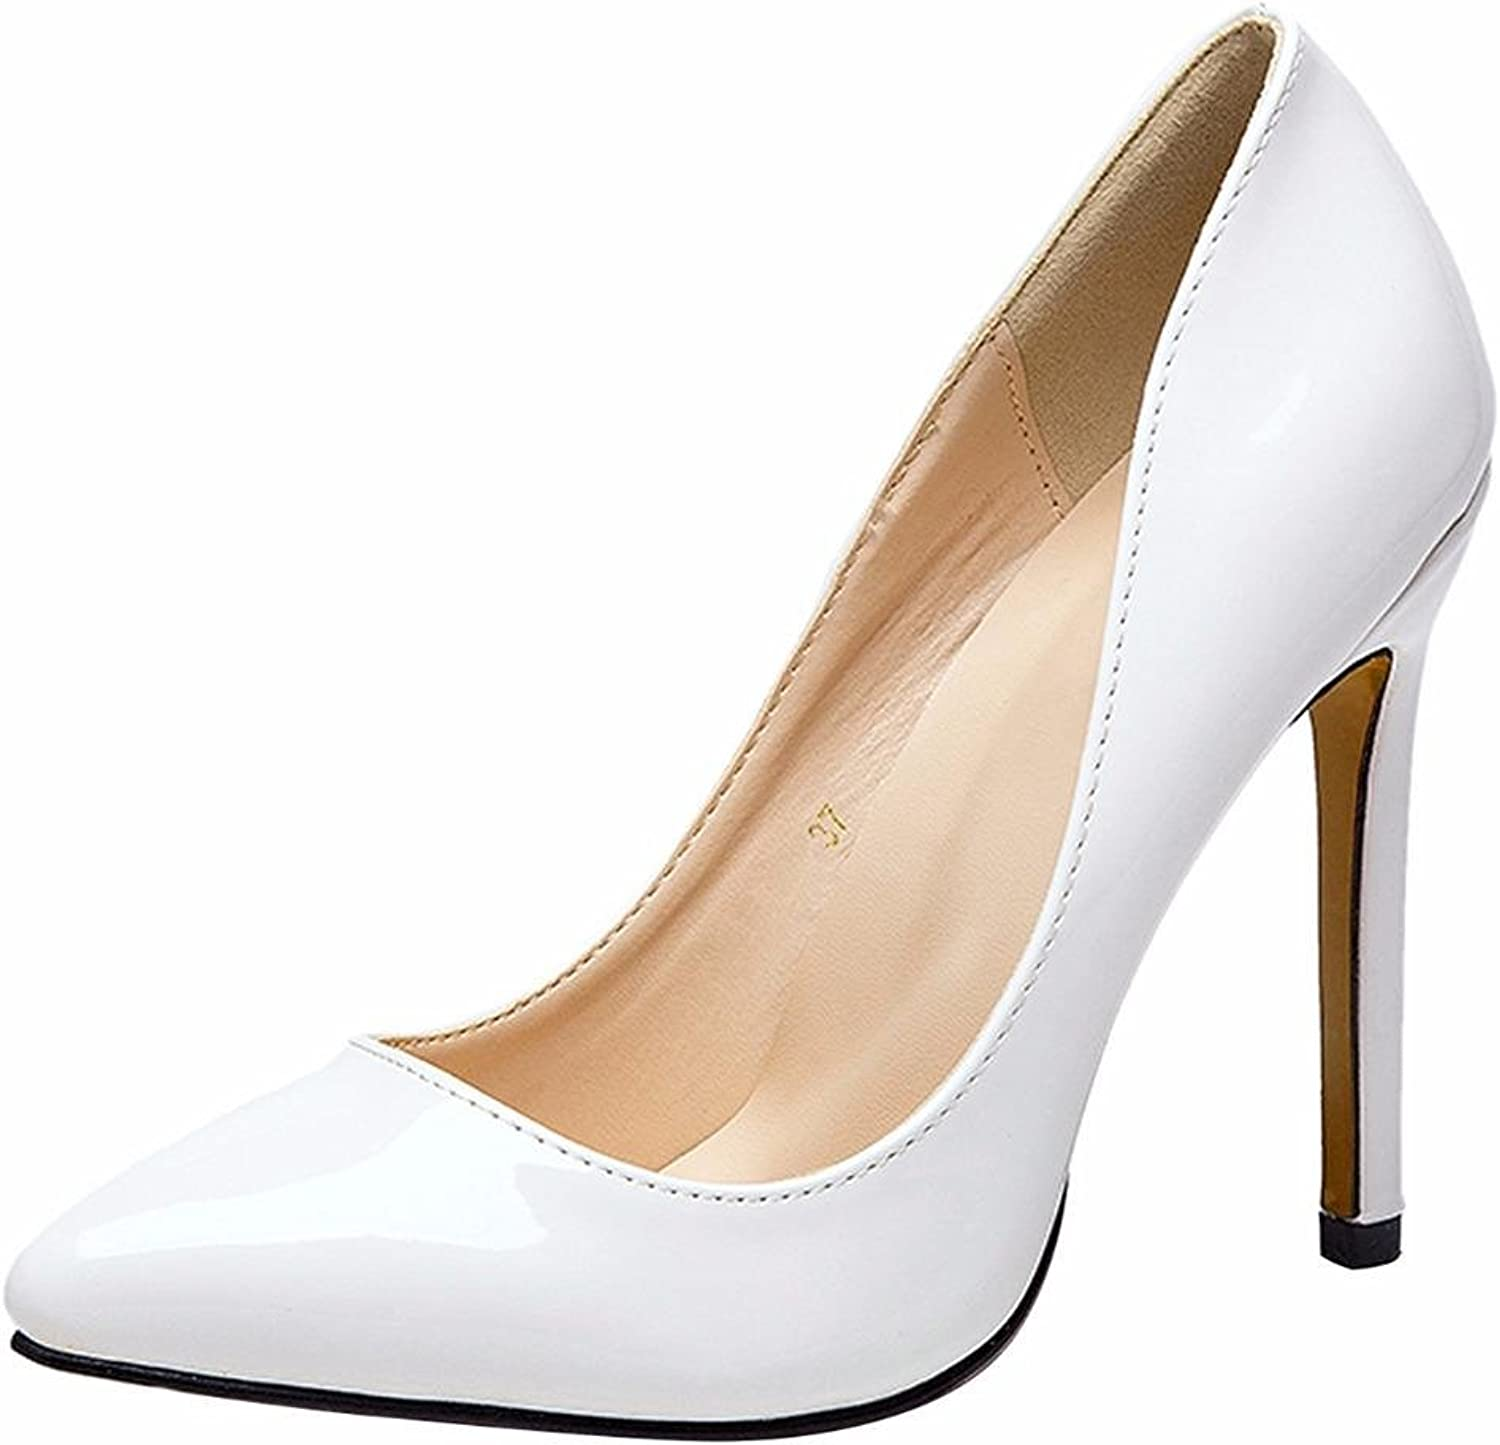 CAMSSOO Women High Heels Pointed Toe Dress Pumps Slip on Stiletto Wedding Party Basic shoes